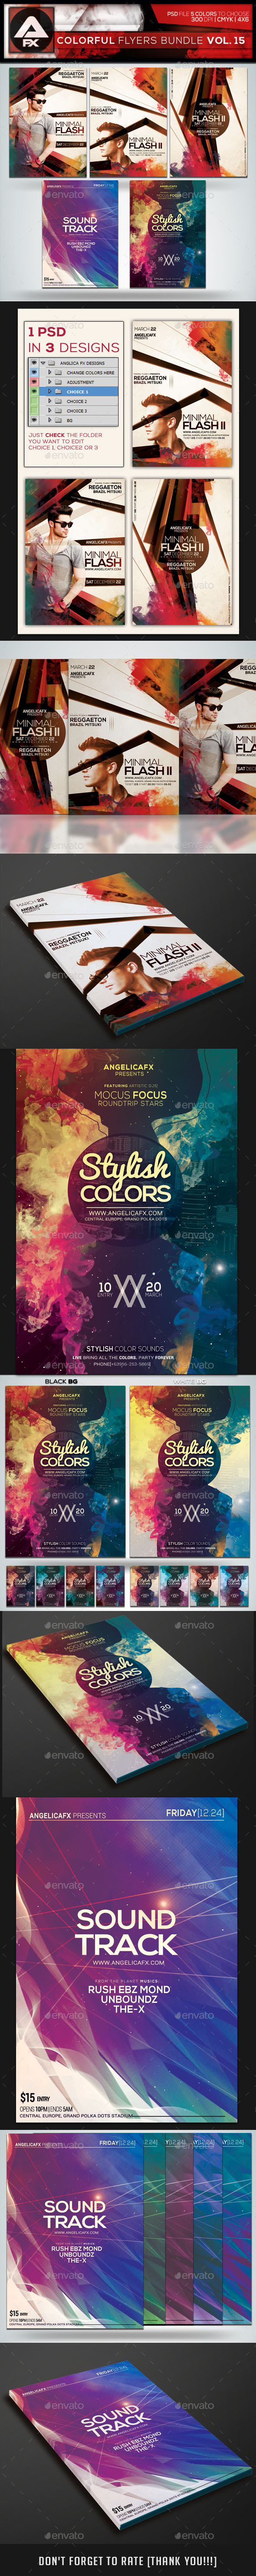 GraphicRiver Colorful Flyers Bundle Vol.15 10526415